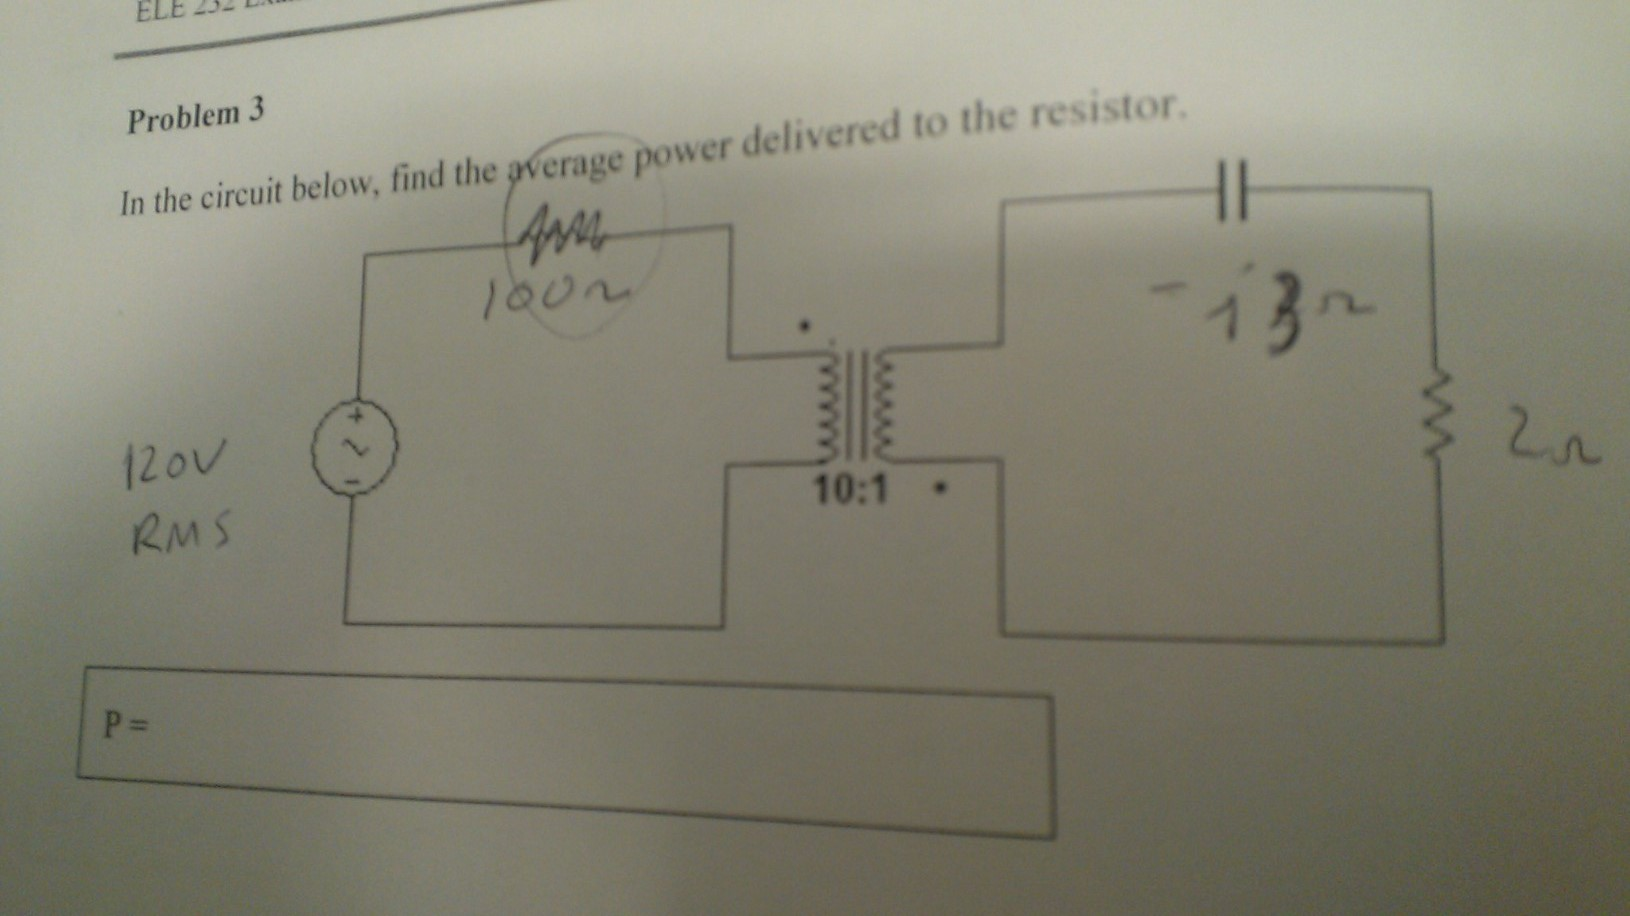 In the circuit below, find the average power deliv